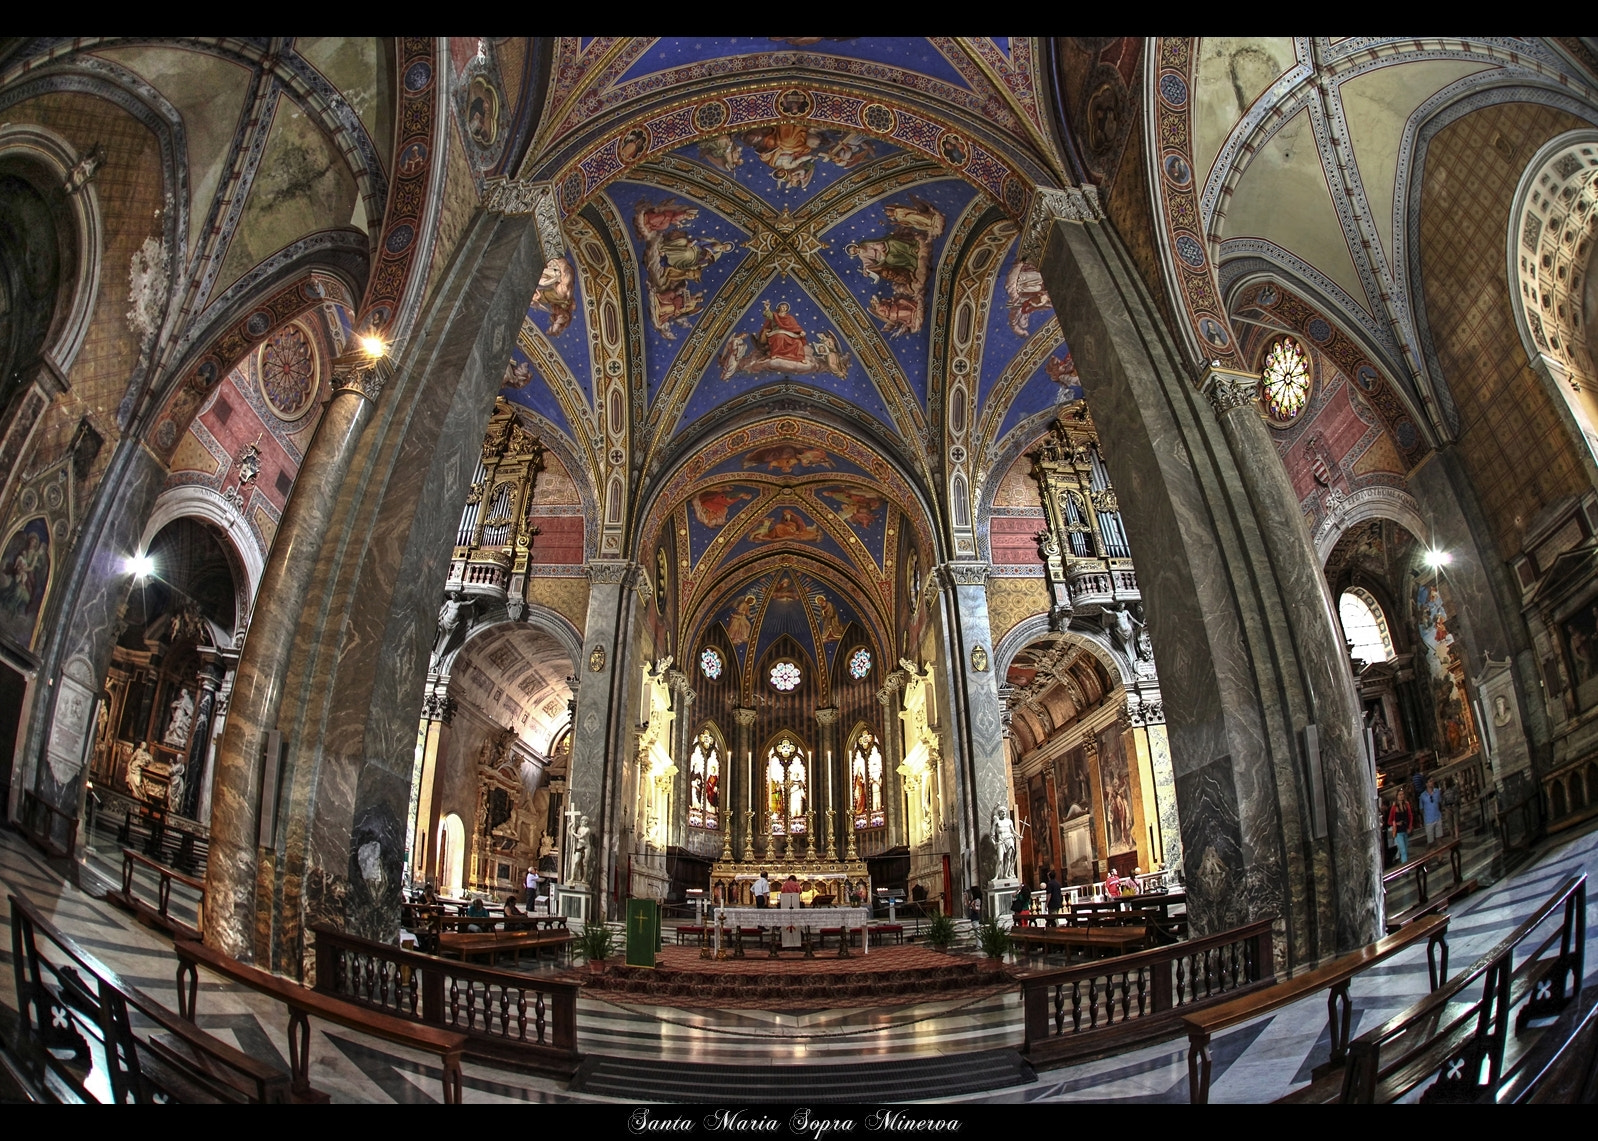 Photograph *Santa Maria Sopra Minerva* by erhan sasmaz on 500px